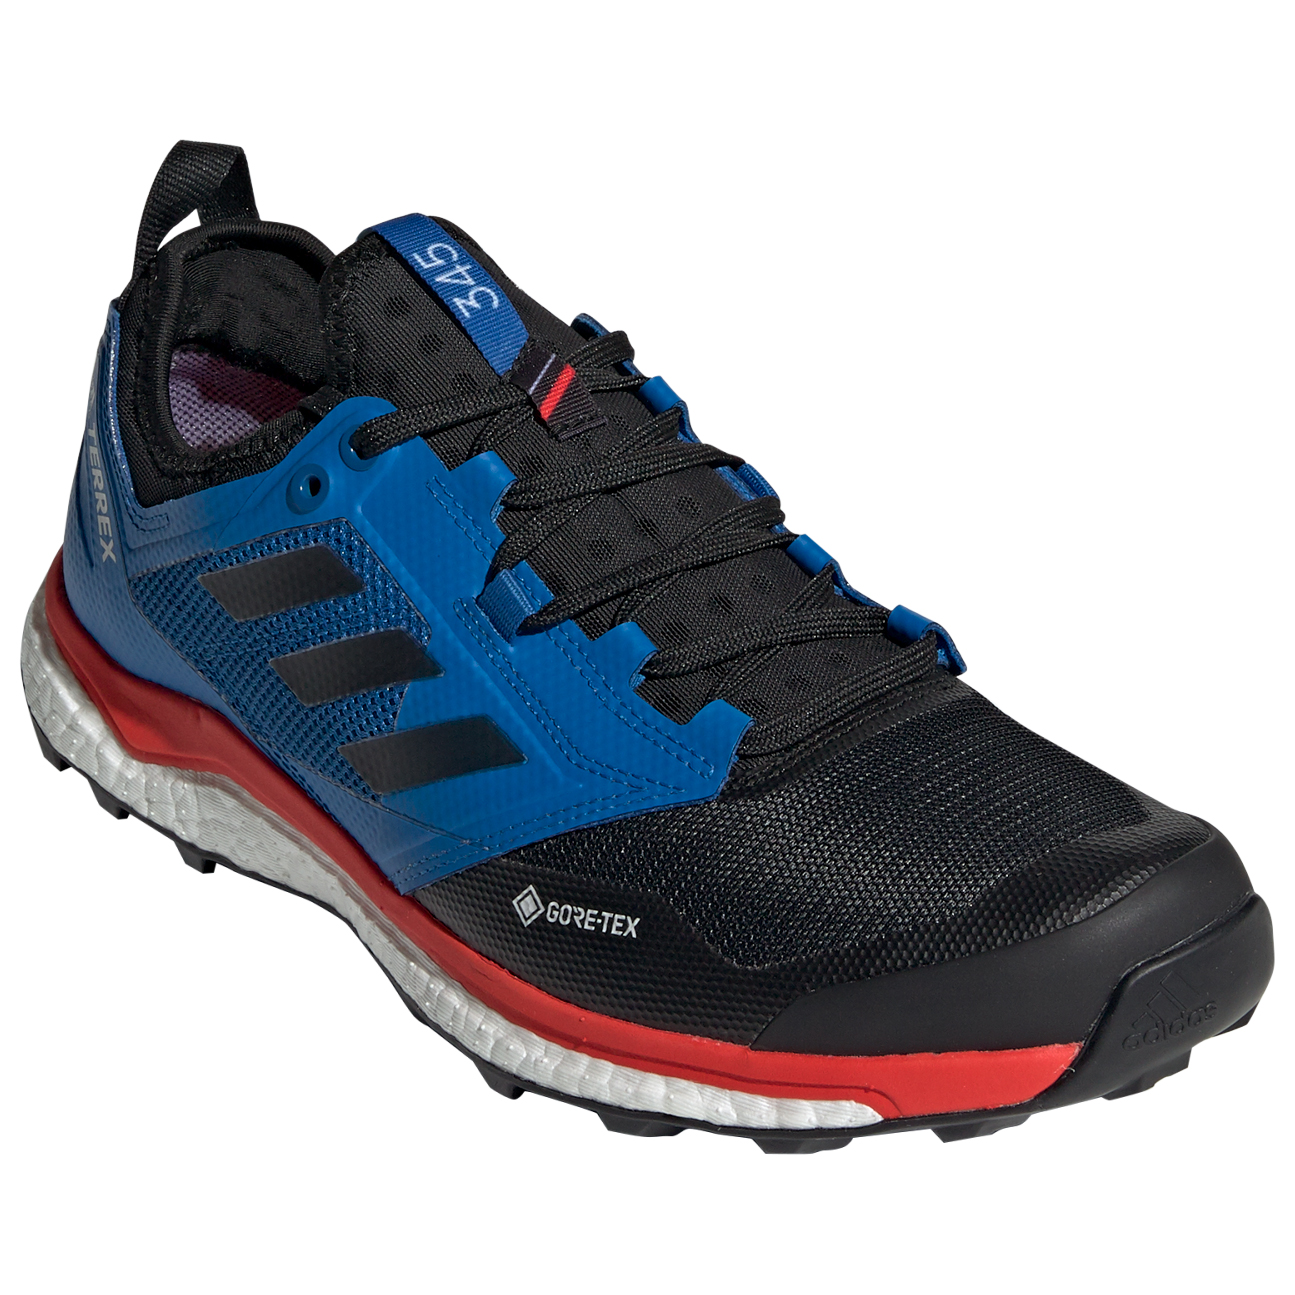 726fb0e90dfd7 Adidas Terrex Agravic XT GTX - Trail running shoes Men s